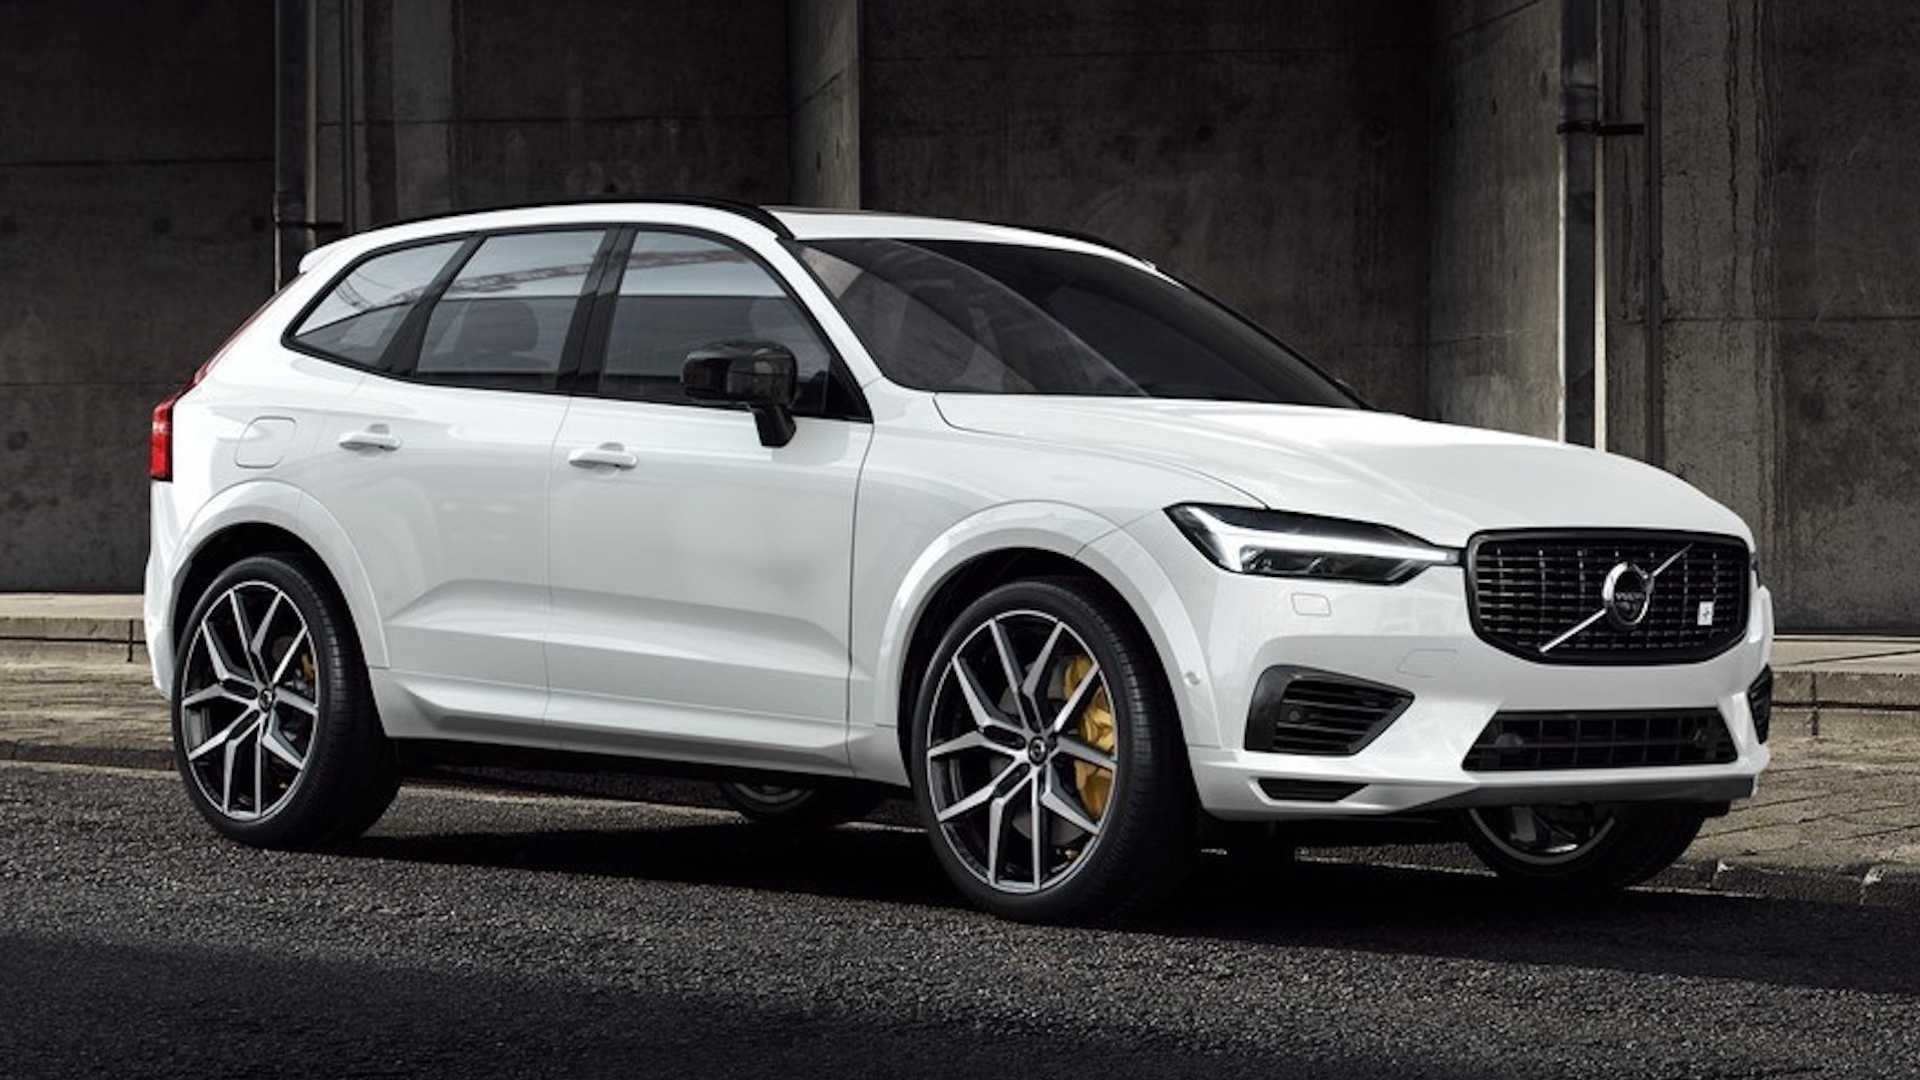 Volvo Xc60 V60 Now Pack Polestar S 415 Hp Plug In Powertrain